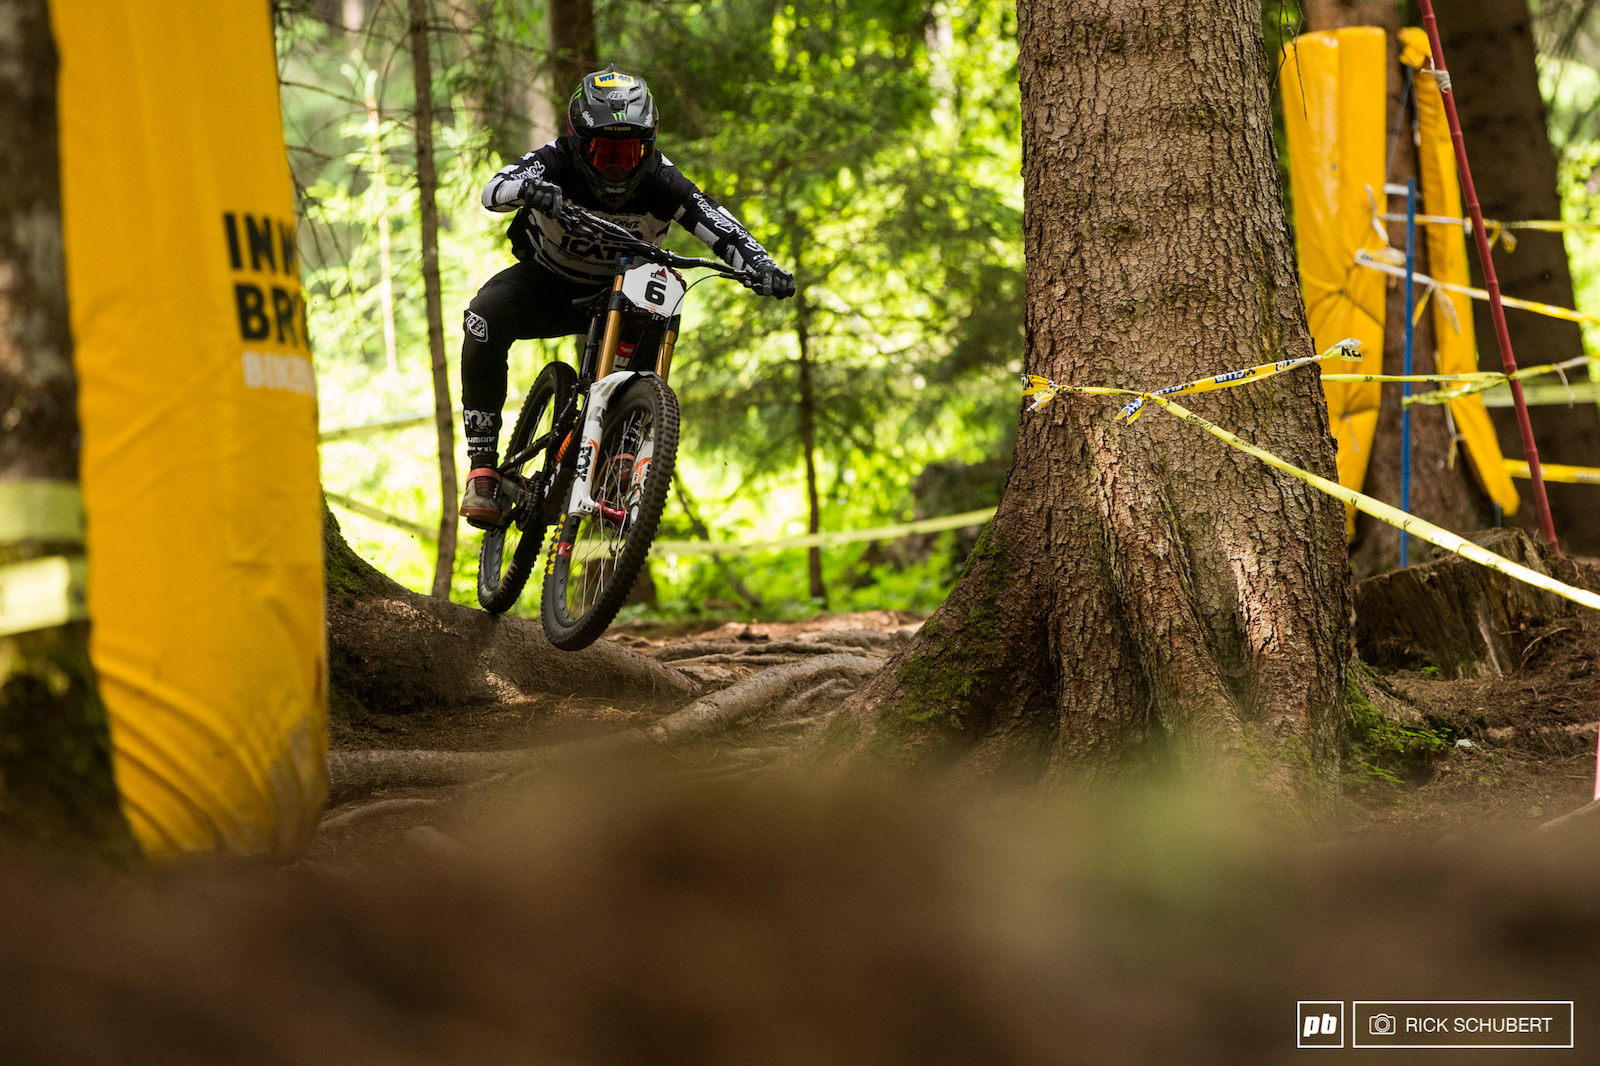 Luca Shaw is coming closer to be on the podium. A great progress from Leogang to an 8th place finish in Innsbruck.